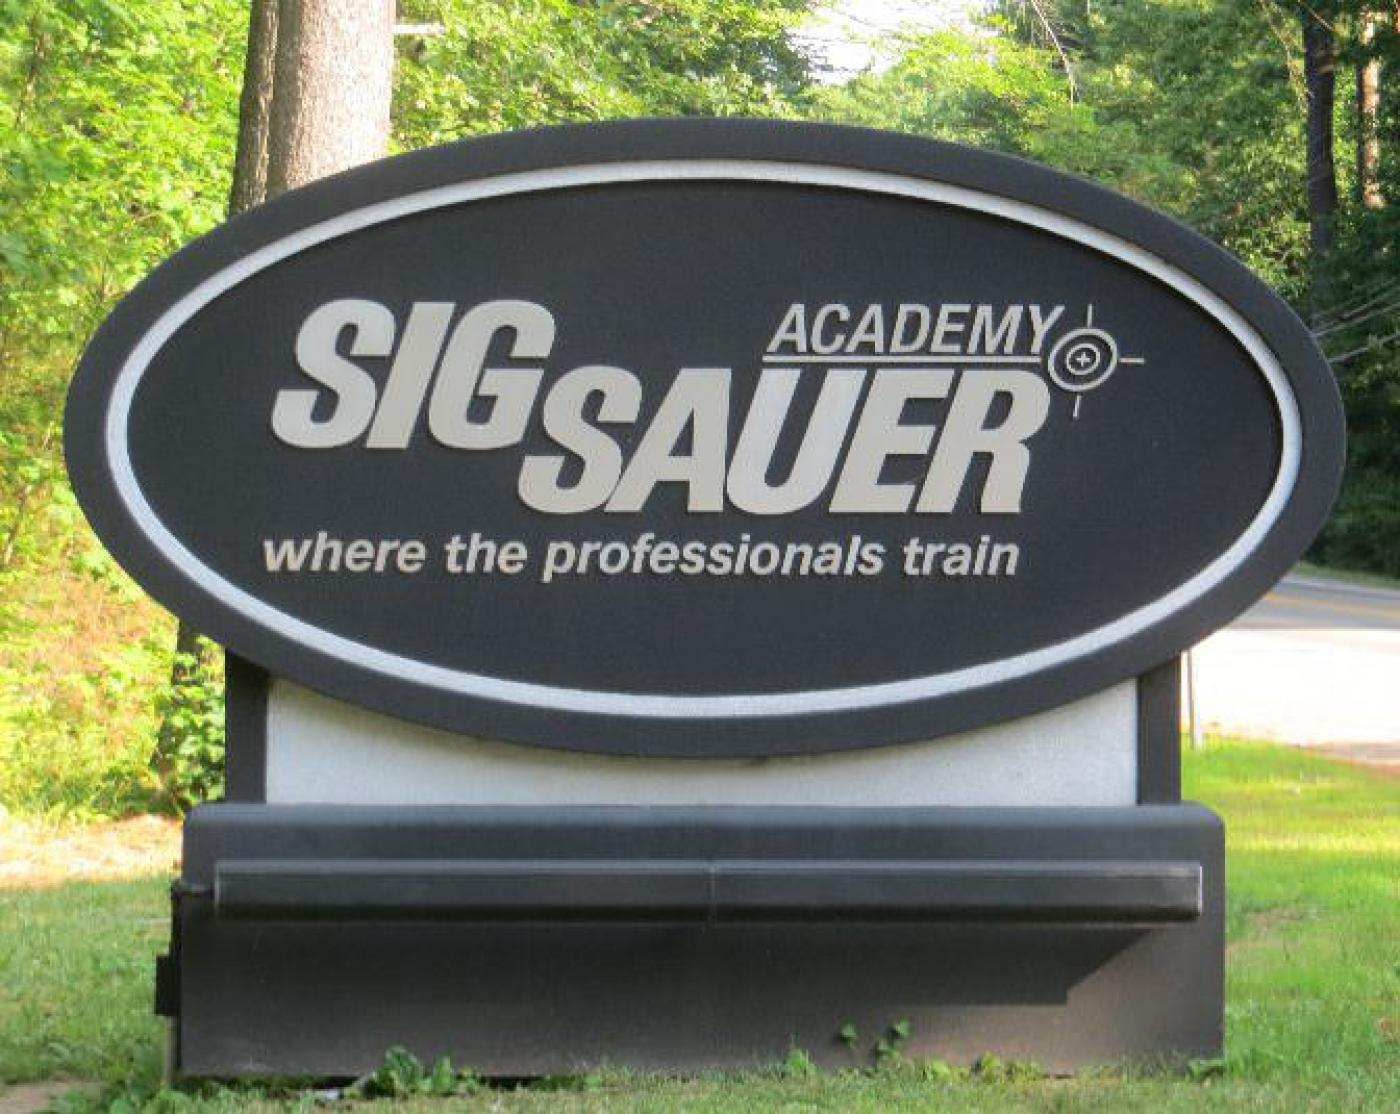 North Branch Begins Work on New Testing and Engineering Range at Sig Sauer Academy